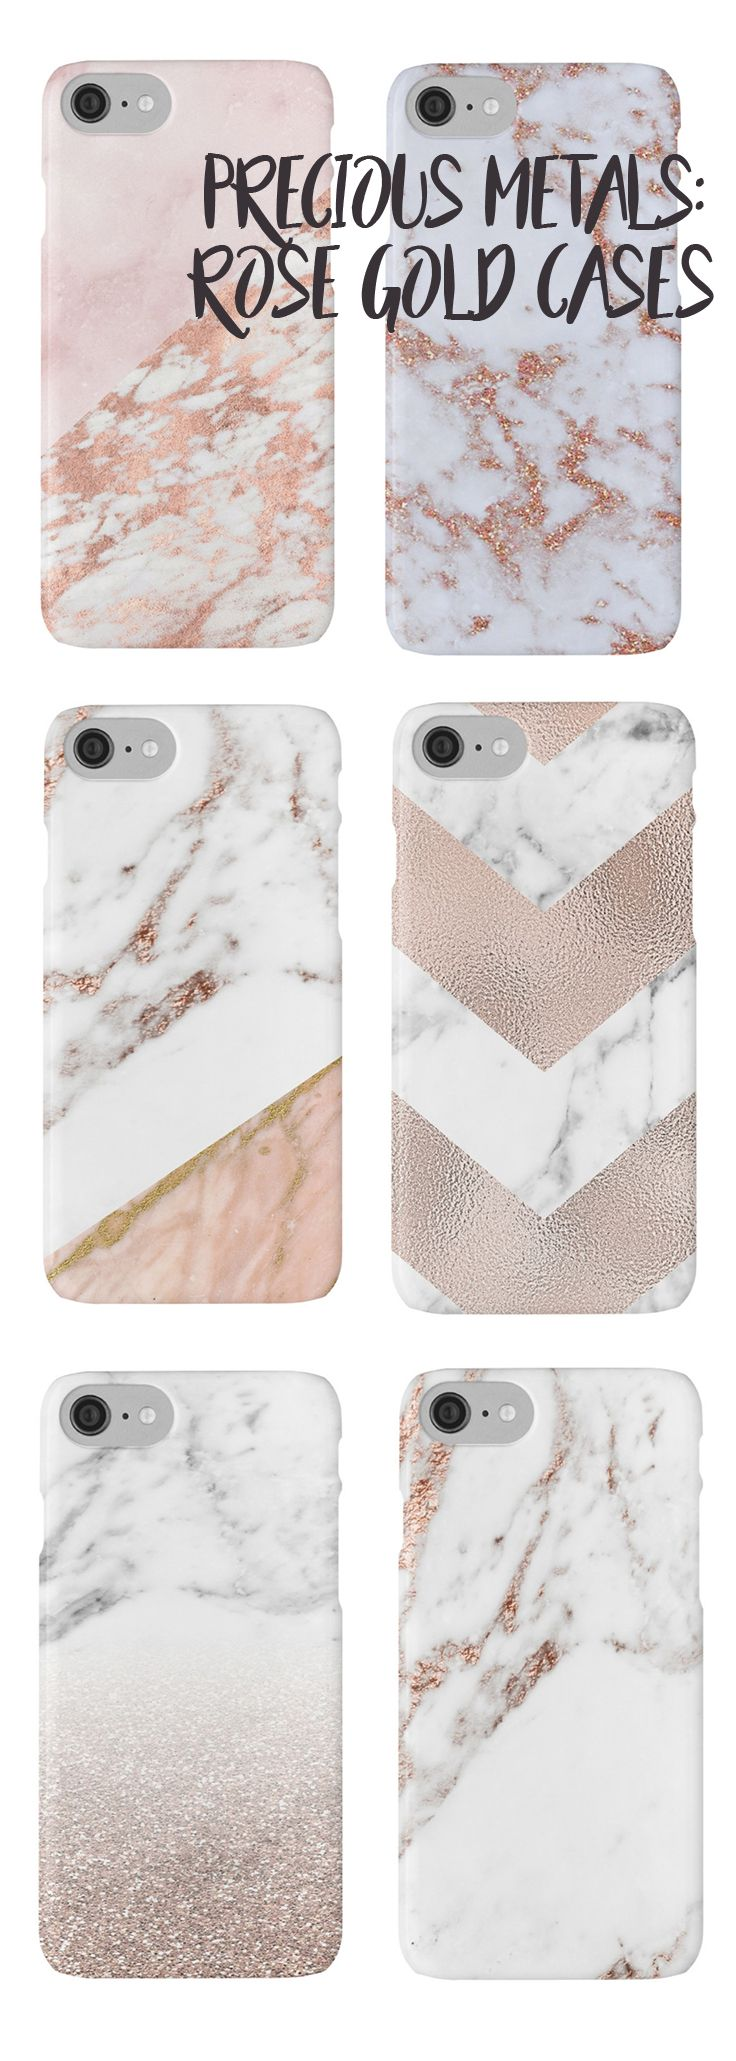 Shop here for the most stunning rose gold phone cases - Peggie Prints on Redbubble